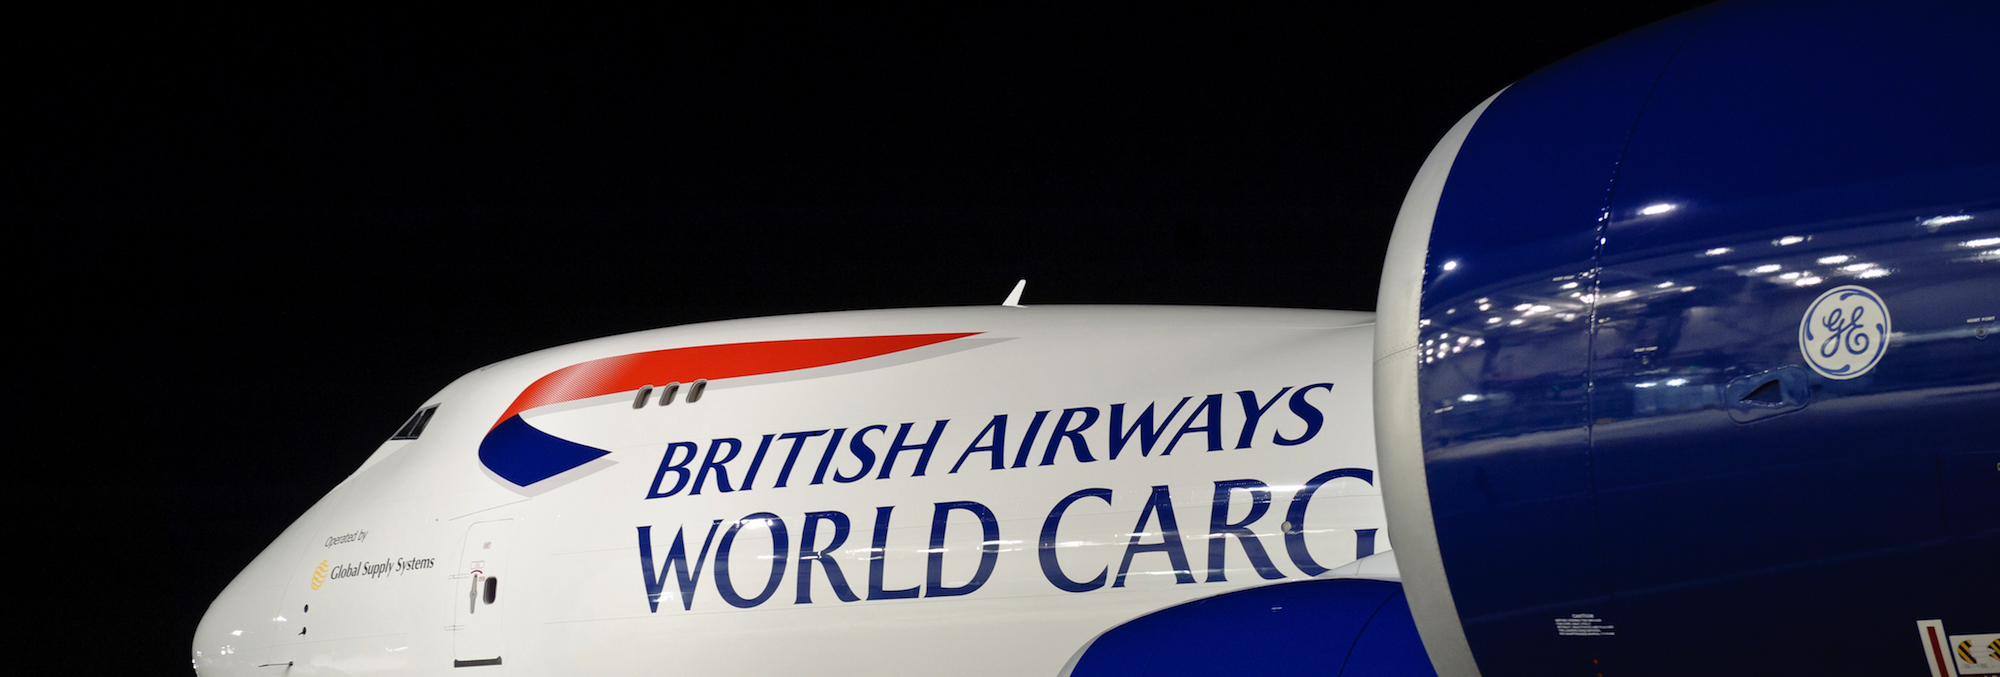 BA World Cargo image